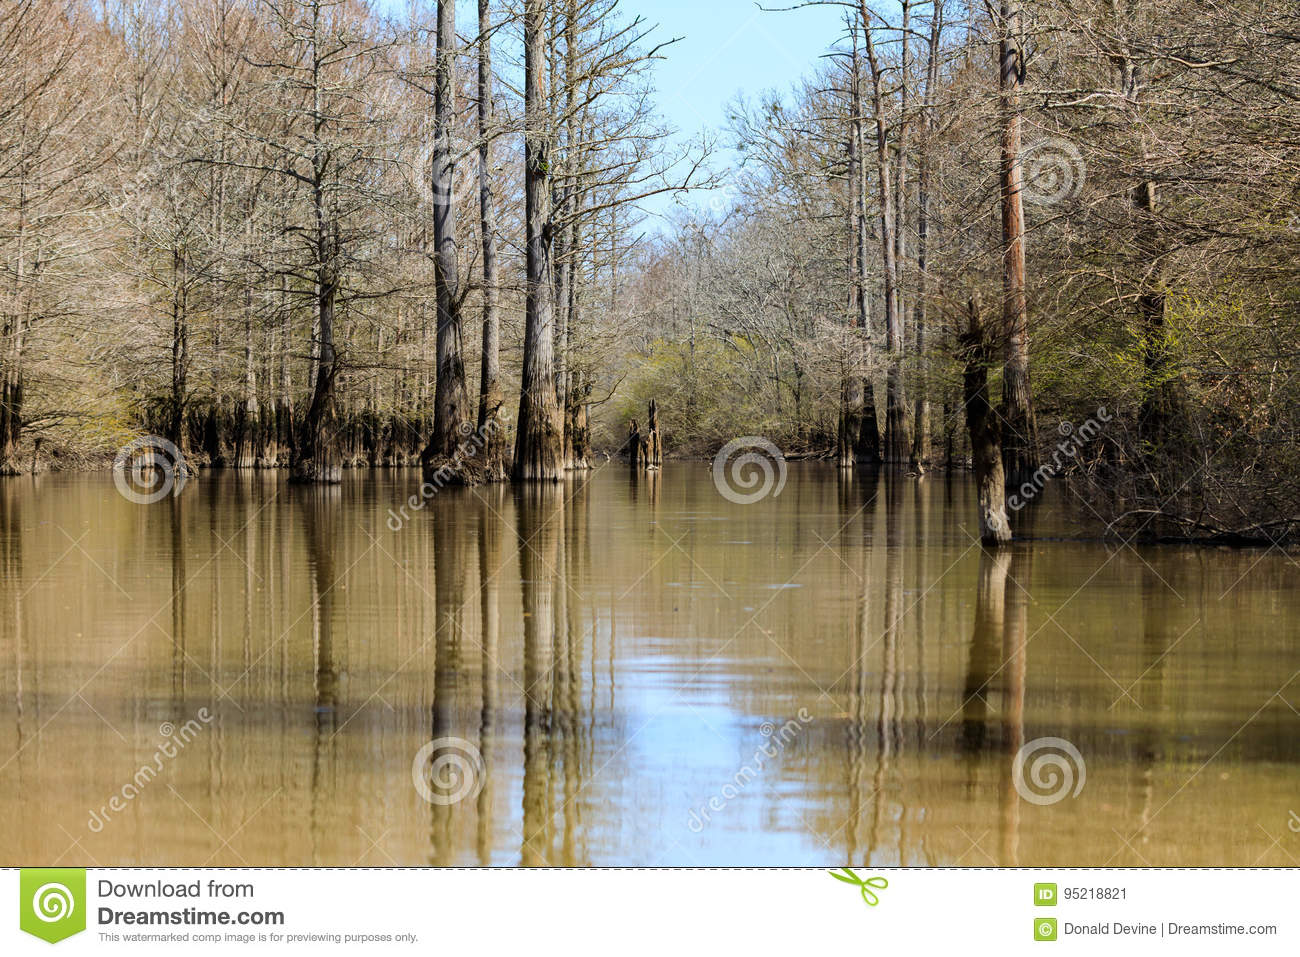 Cypress trees growing in a small lake at Bald Knob Wildlife Refuge.